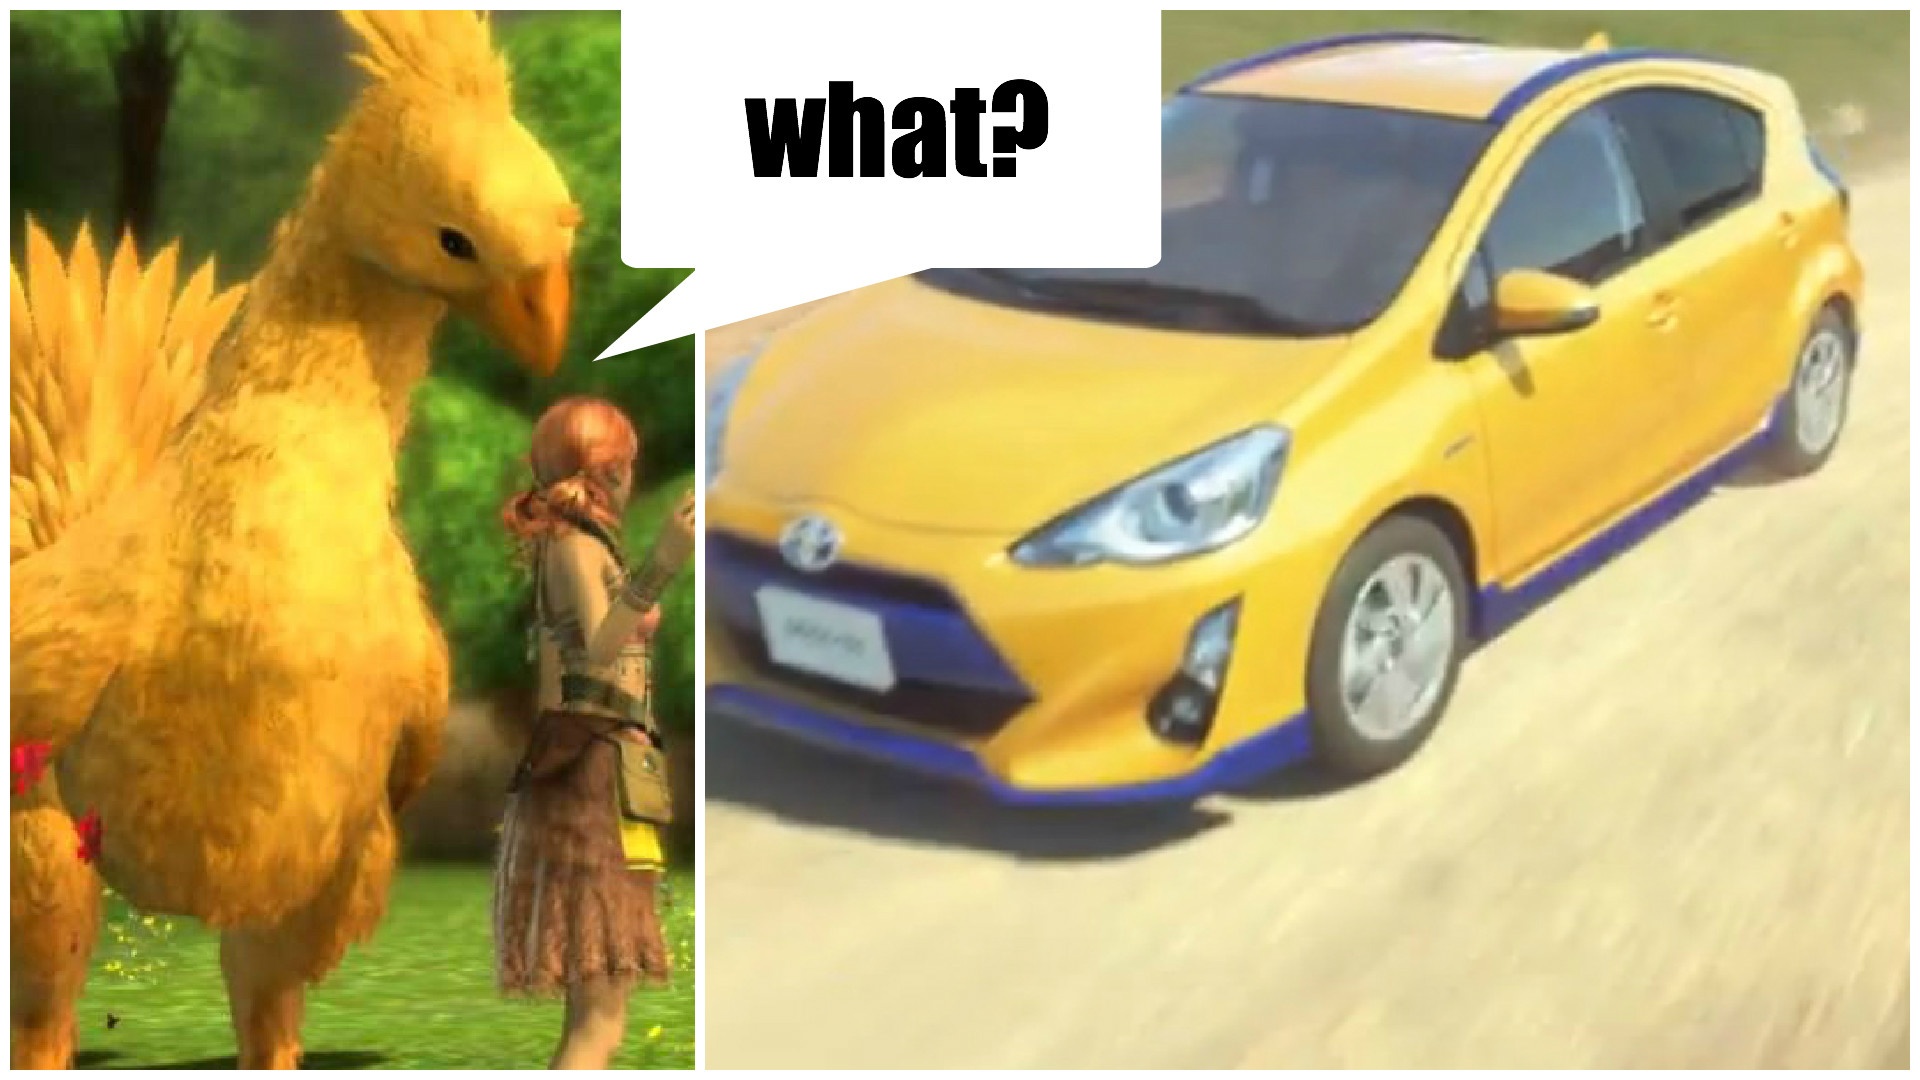 Toyota Thinks Its Car Is the Chocobo from Final Fantasy Borrows